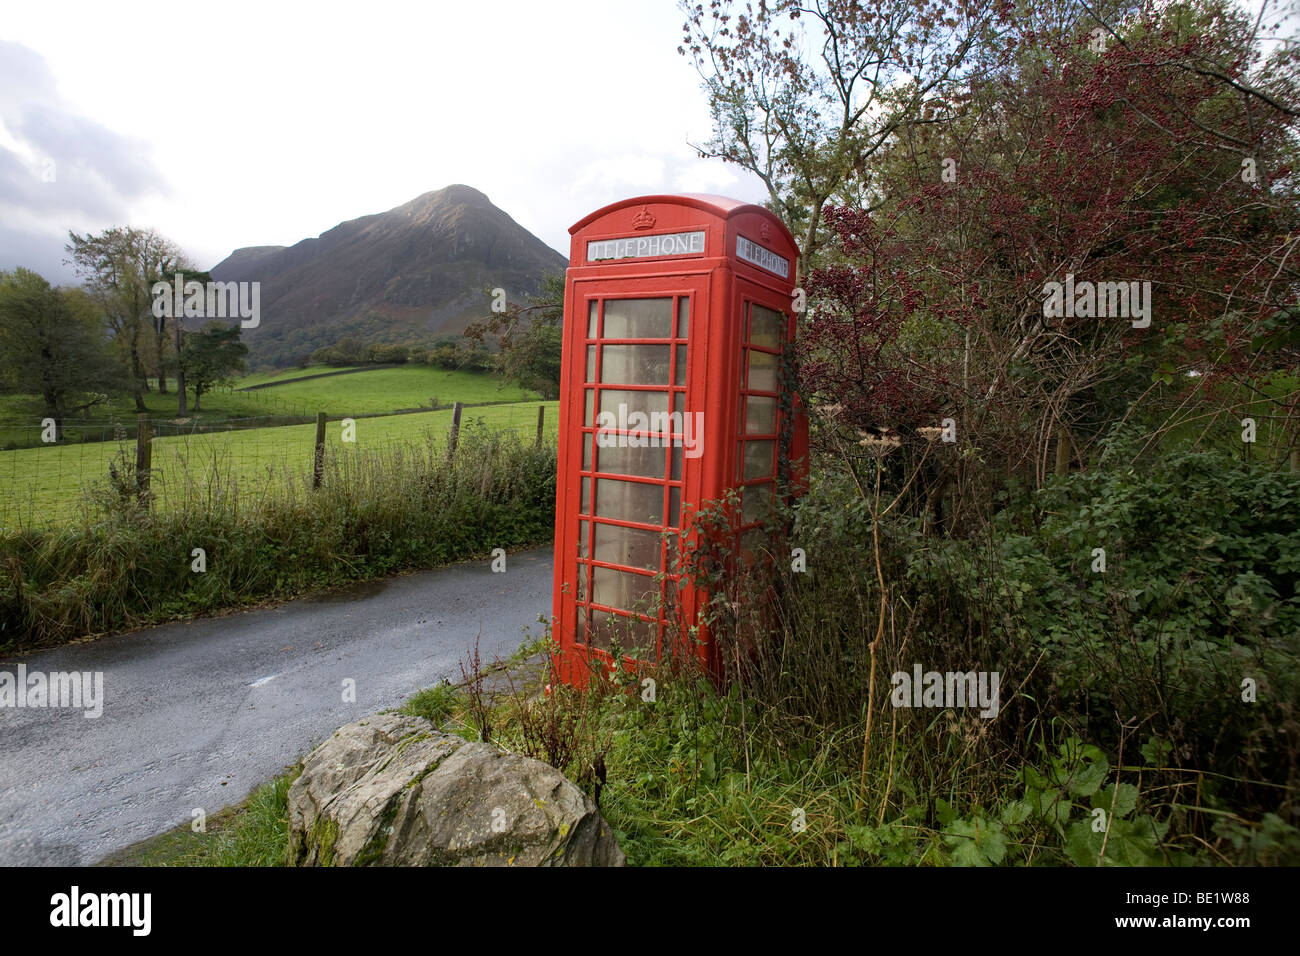 An old red telephone kiosk in the Loweswater village, Cumbria, England, UK - Stock Image